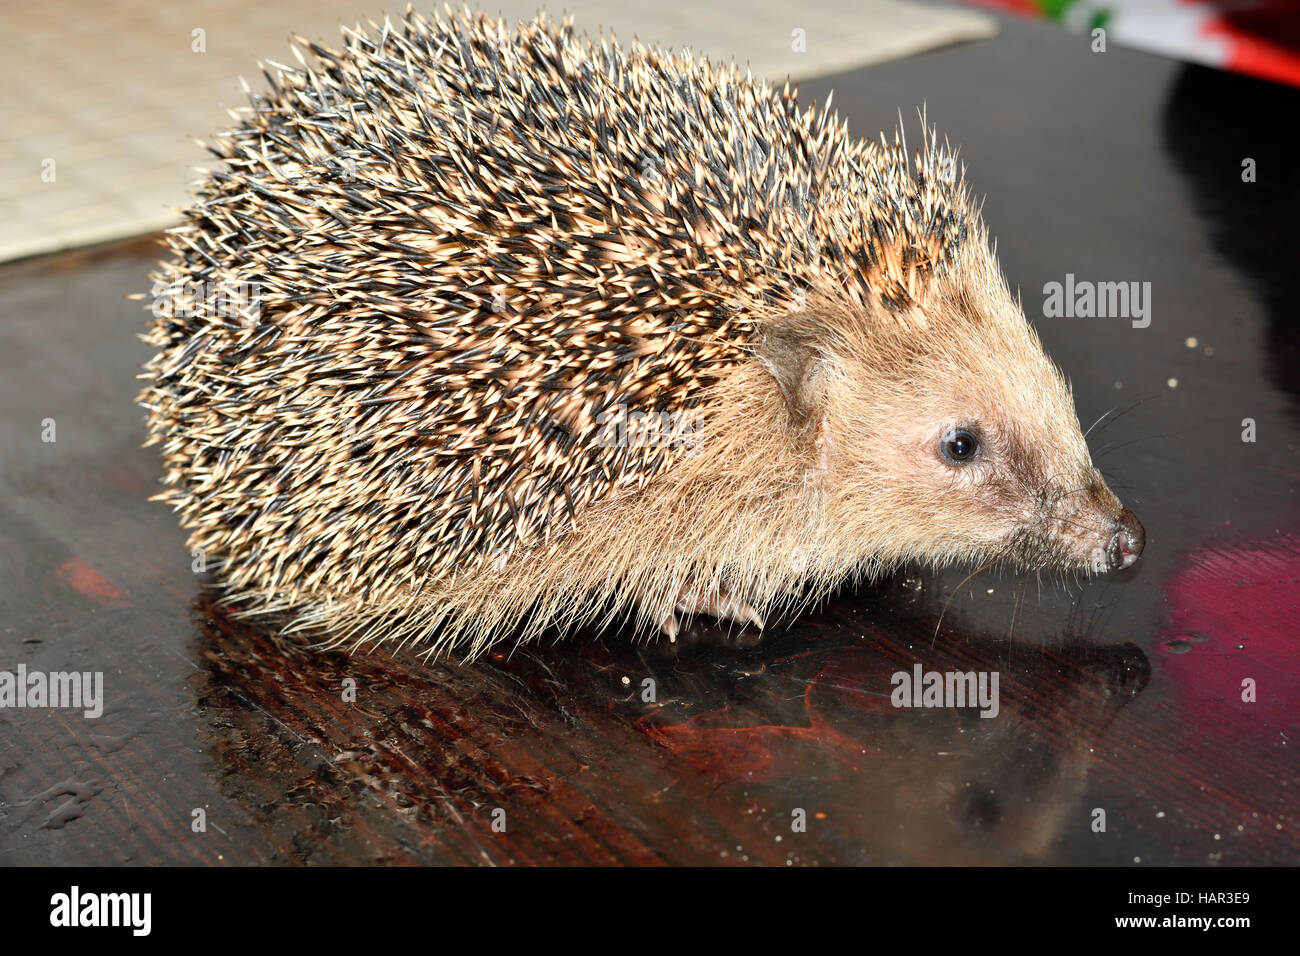 hedgehog curled up - Stock Image